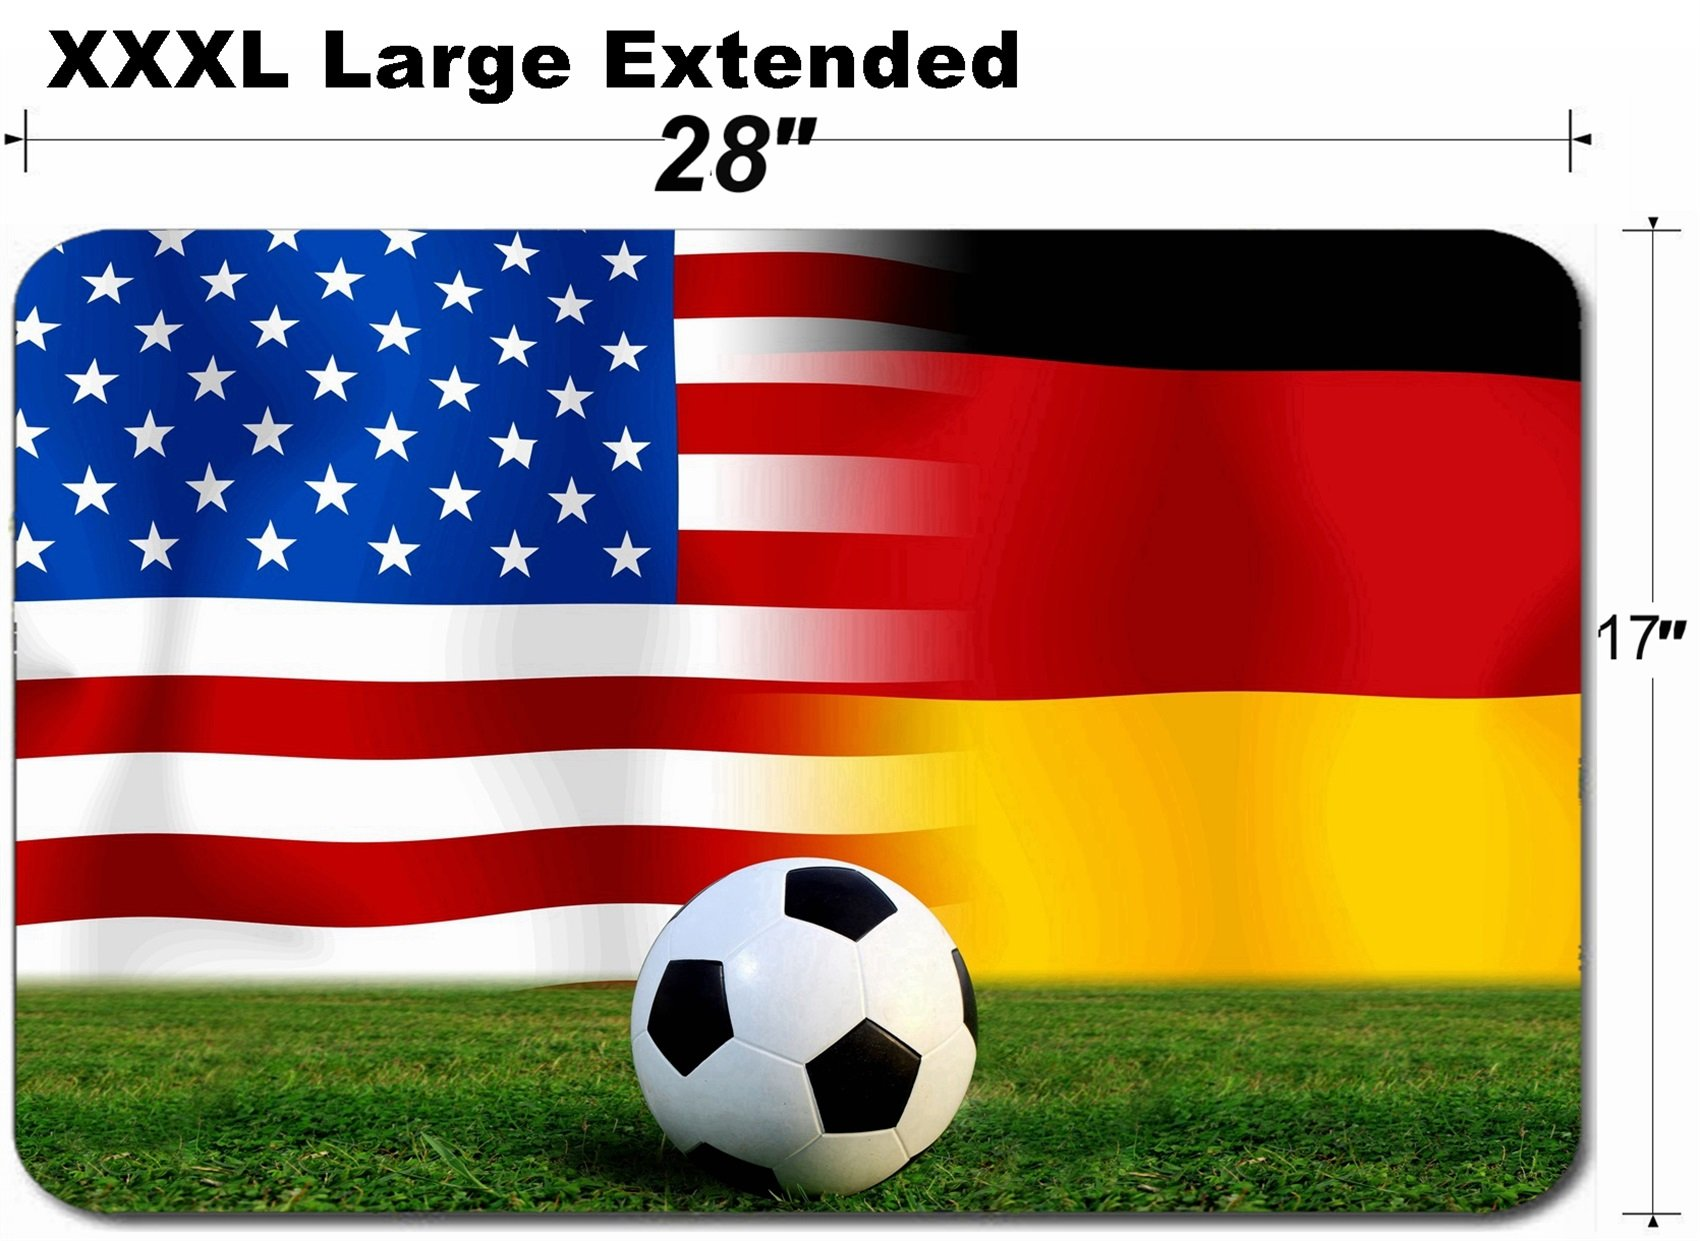 MSD Large Table Mat Non-Slip Natural Rubber Desk Pads Image ID 26544143 Soccer World Cup 2014 Football United States of America and German